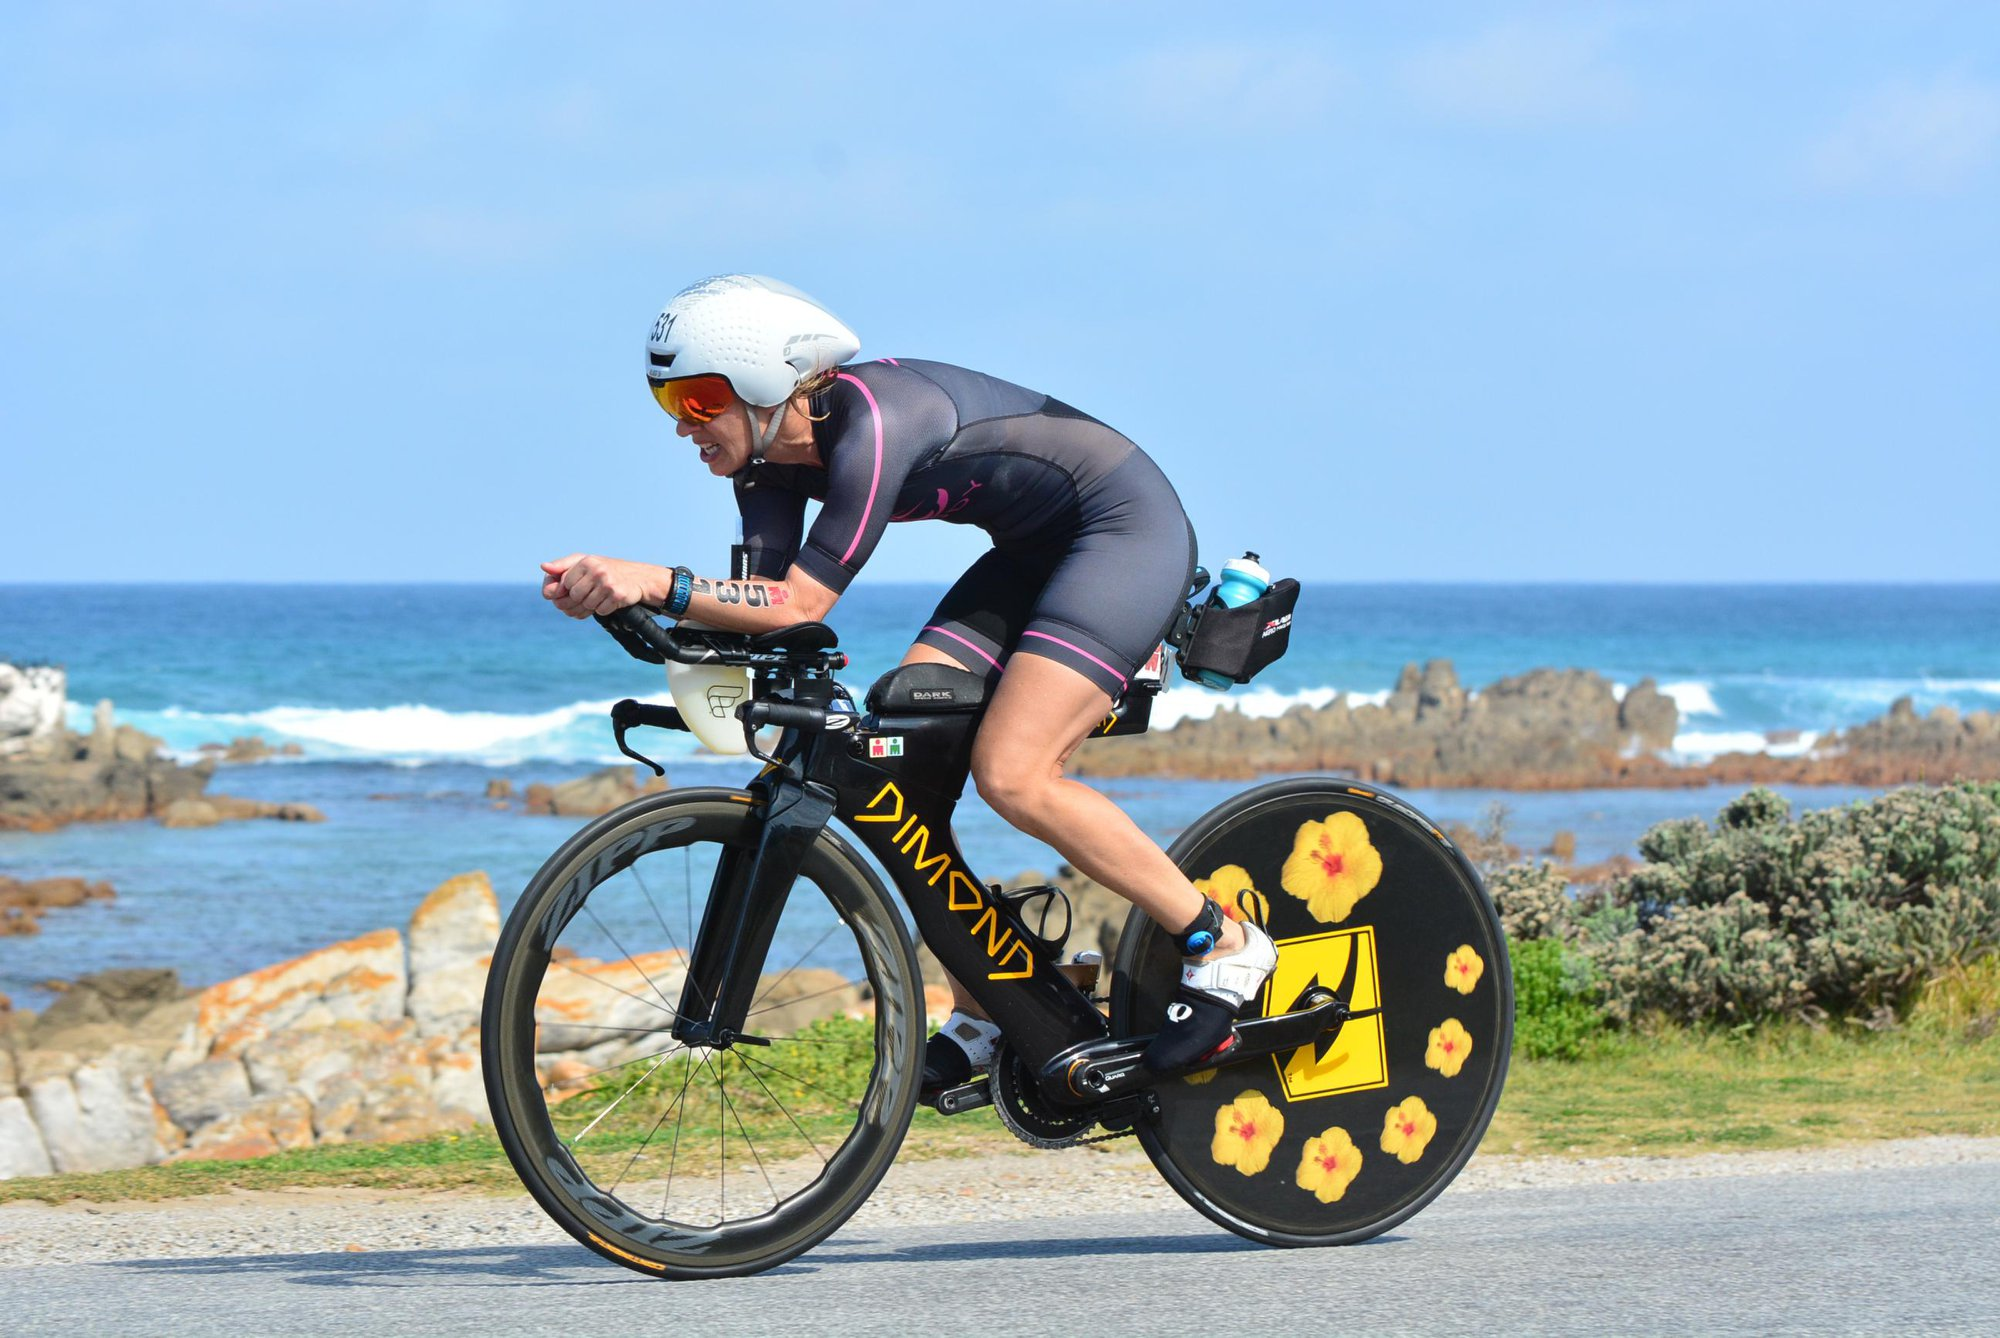 Coach_Terry_Wilson_Pursuit_of_The_Perfect_Race_IRONMAN_703_World_Championship_South_Africa_Rebecca_McKee_Bike.jpg